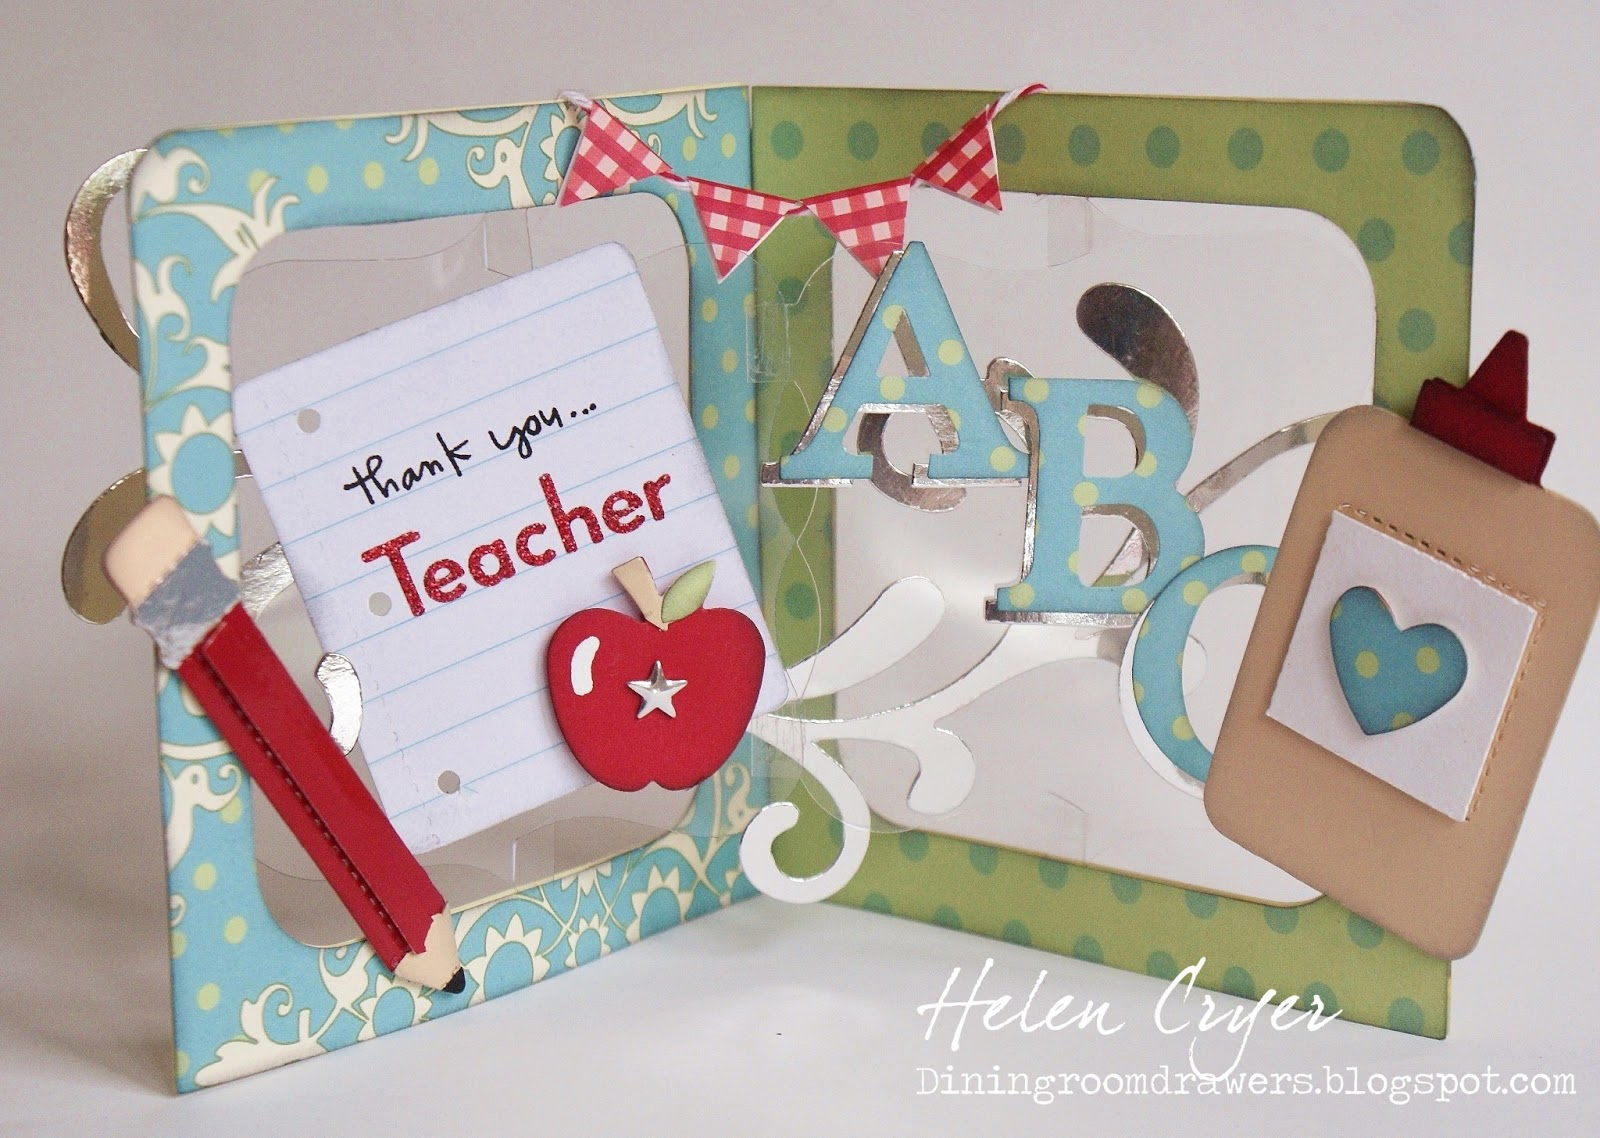 the dining room drawers thank you teacher pop 'n cuts card